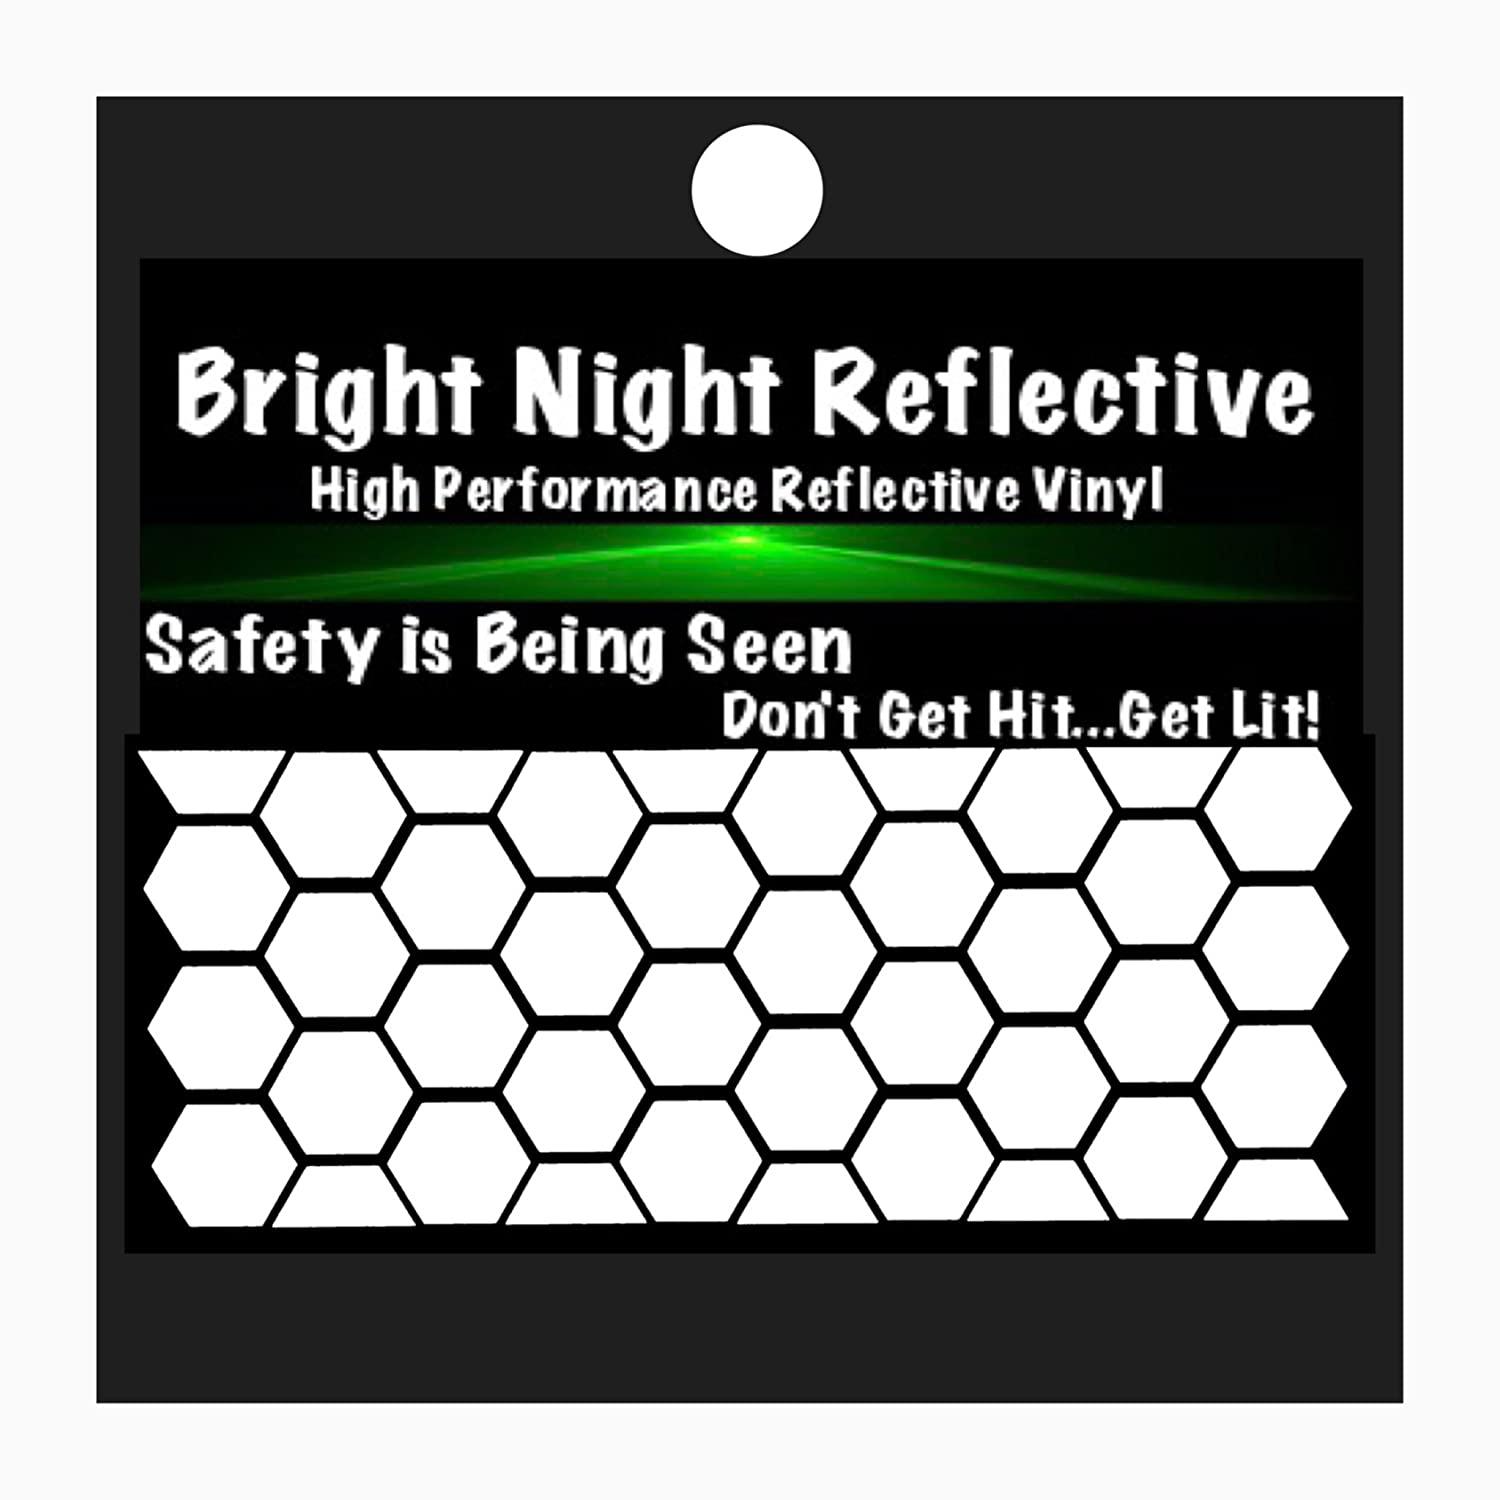 bright night reflective Reflective decals hexagon stickers 1 wide great for helmet bike motorcycle jetski person protection strolllers